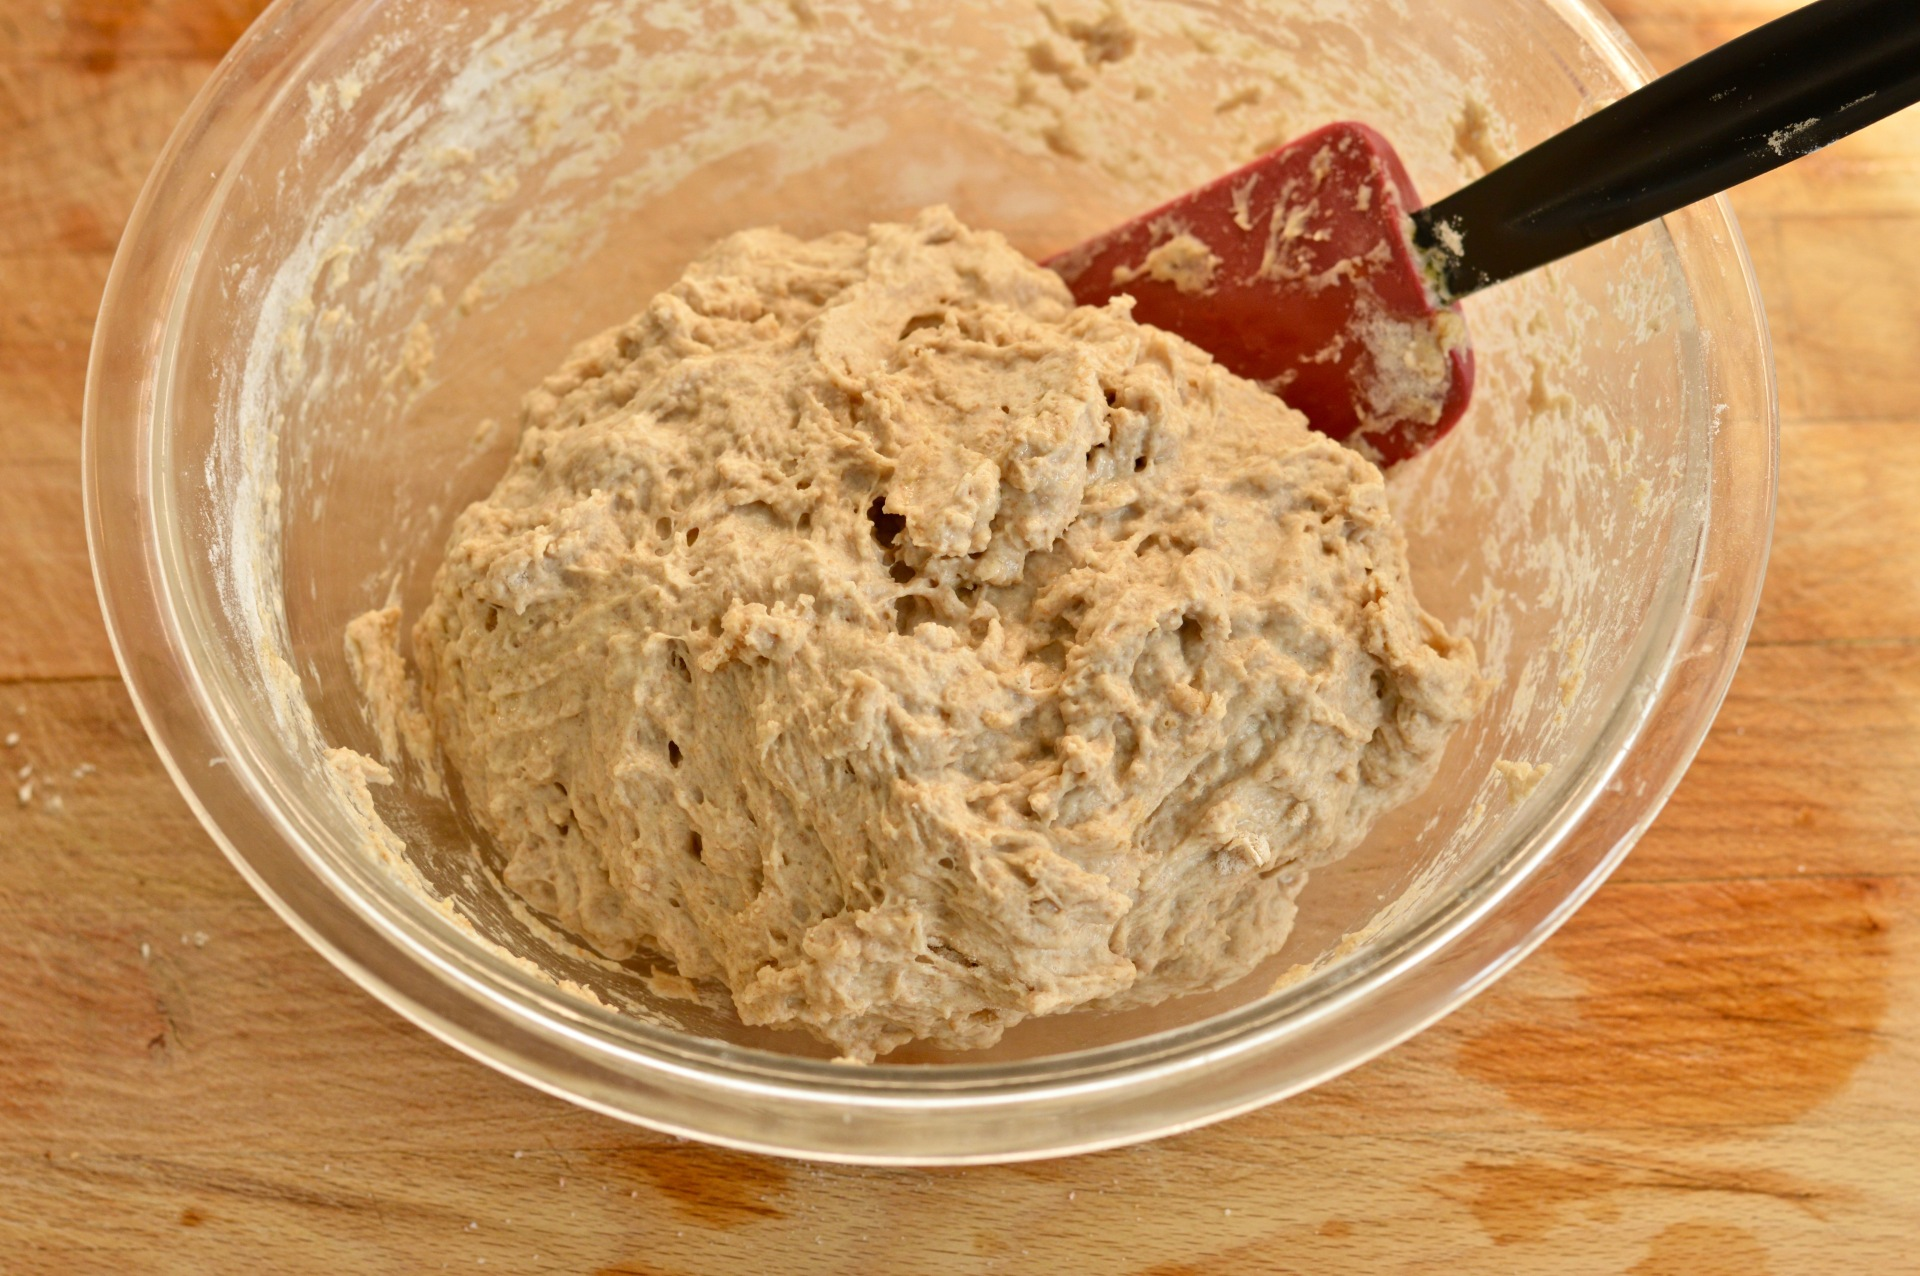 No knead bread dough